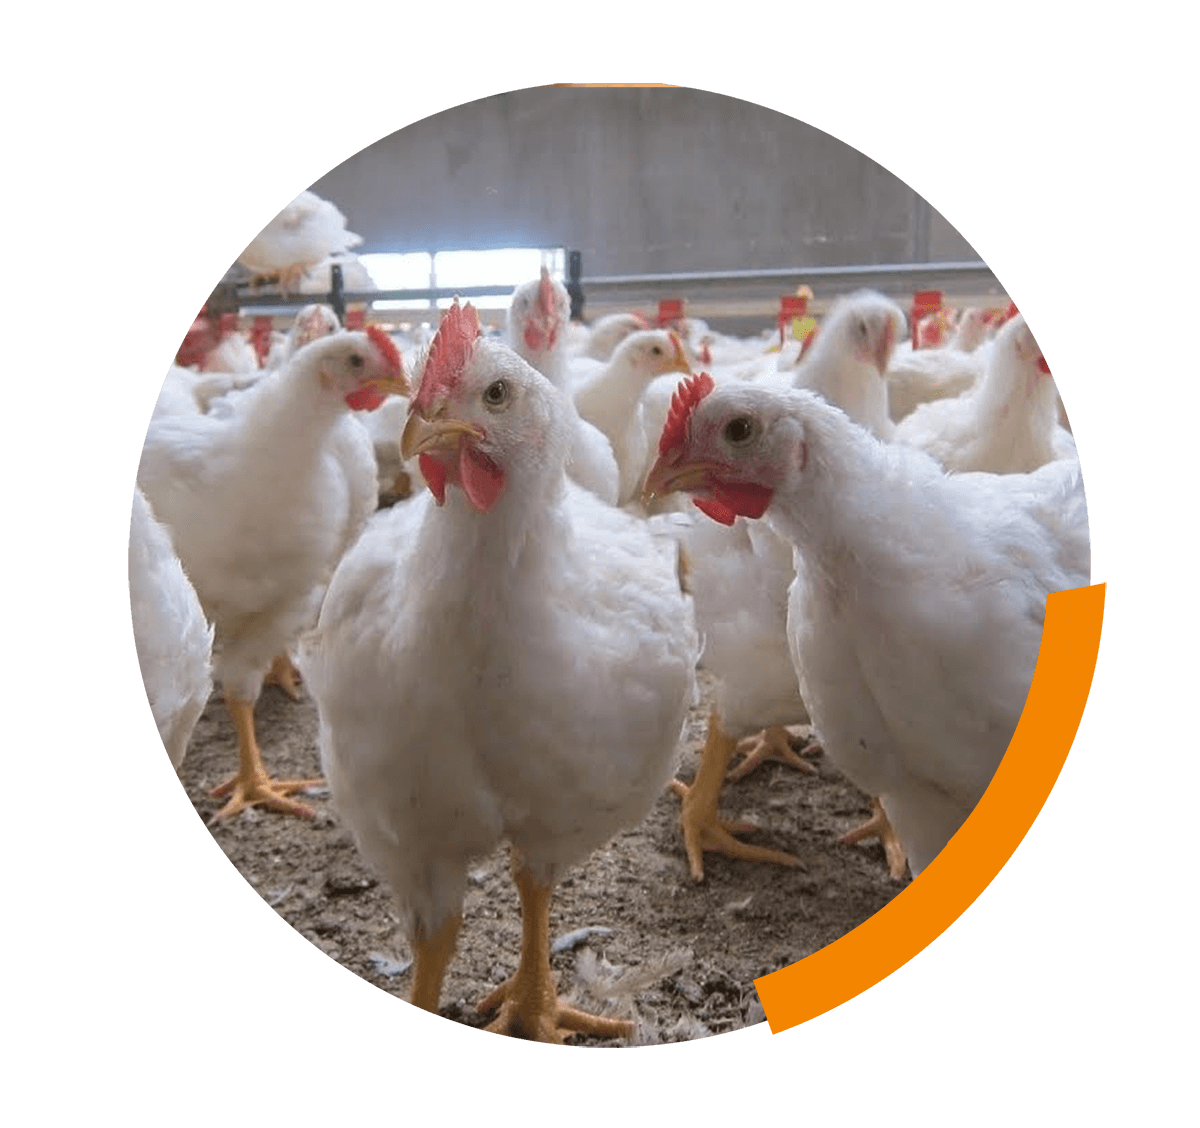 Improvement of welfare in BROILERS and TURKEYS